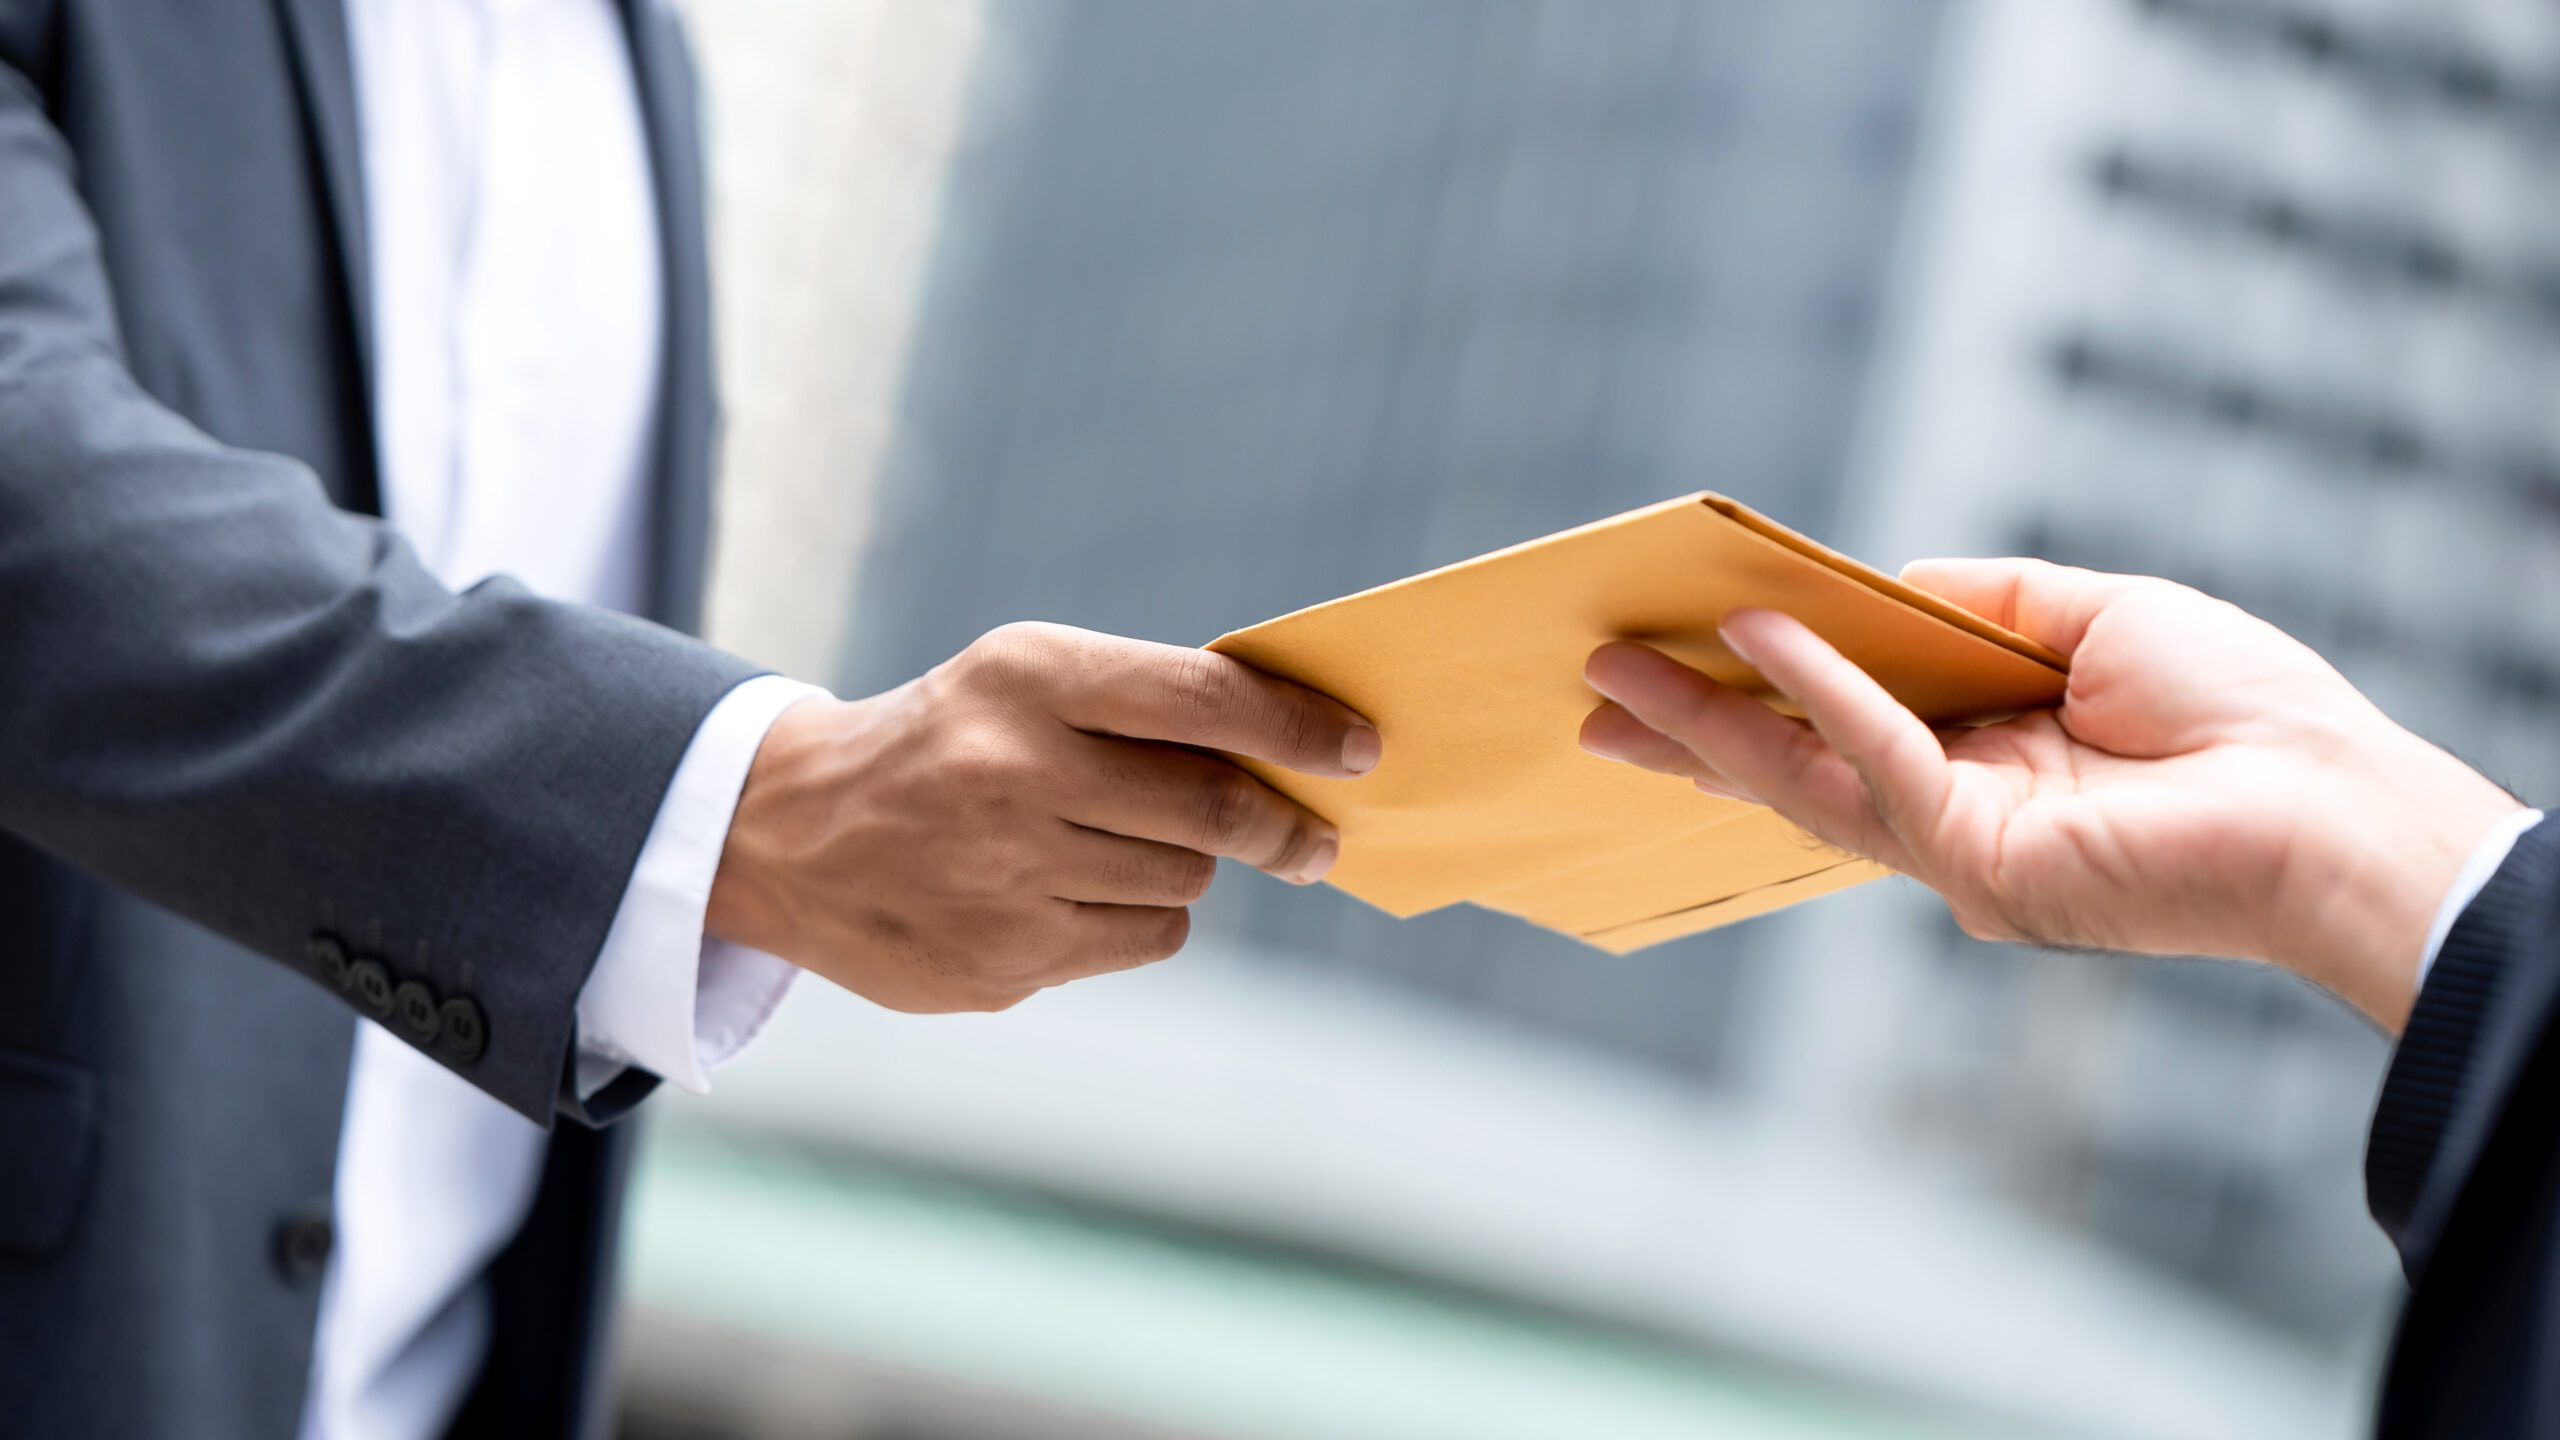 Close up portrait of  businessman hand recieving yellow envelope from boss in urban city background